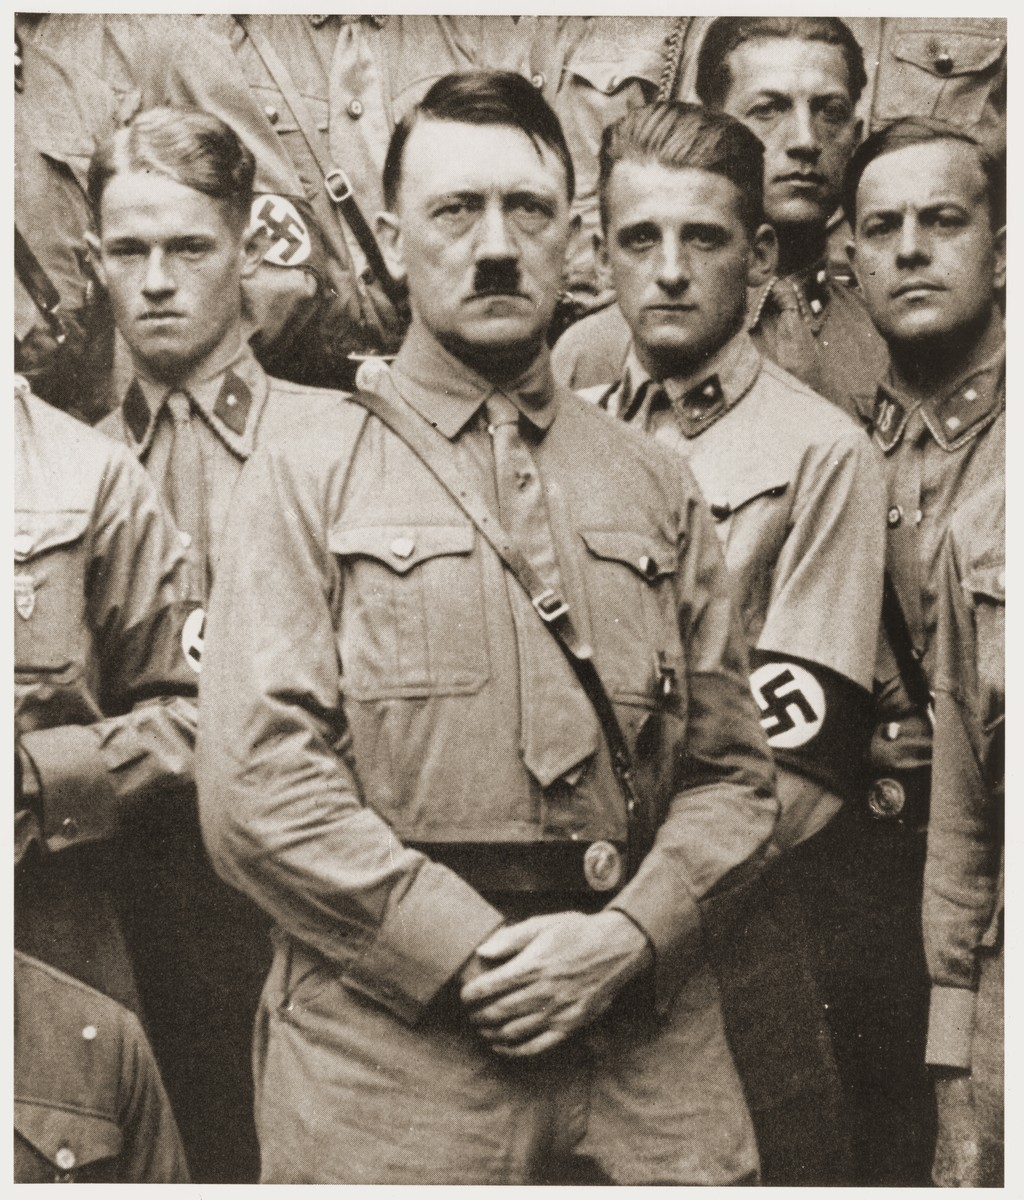 Adolf Hitler poses with a group of SS members soon after his appointment as Chancellor.